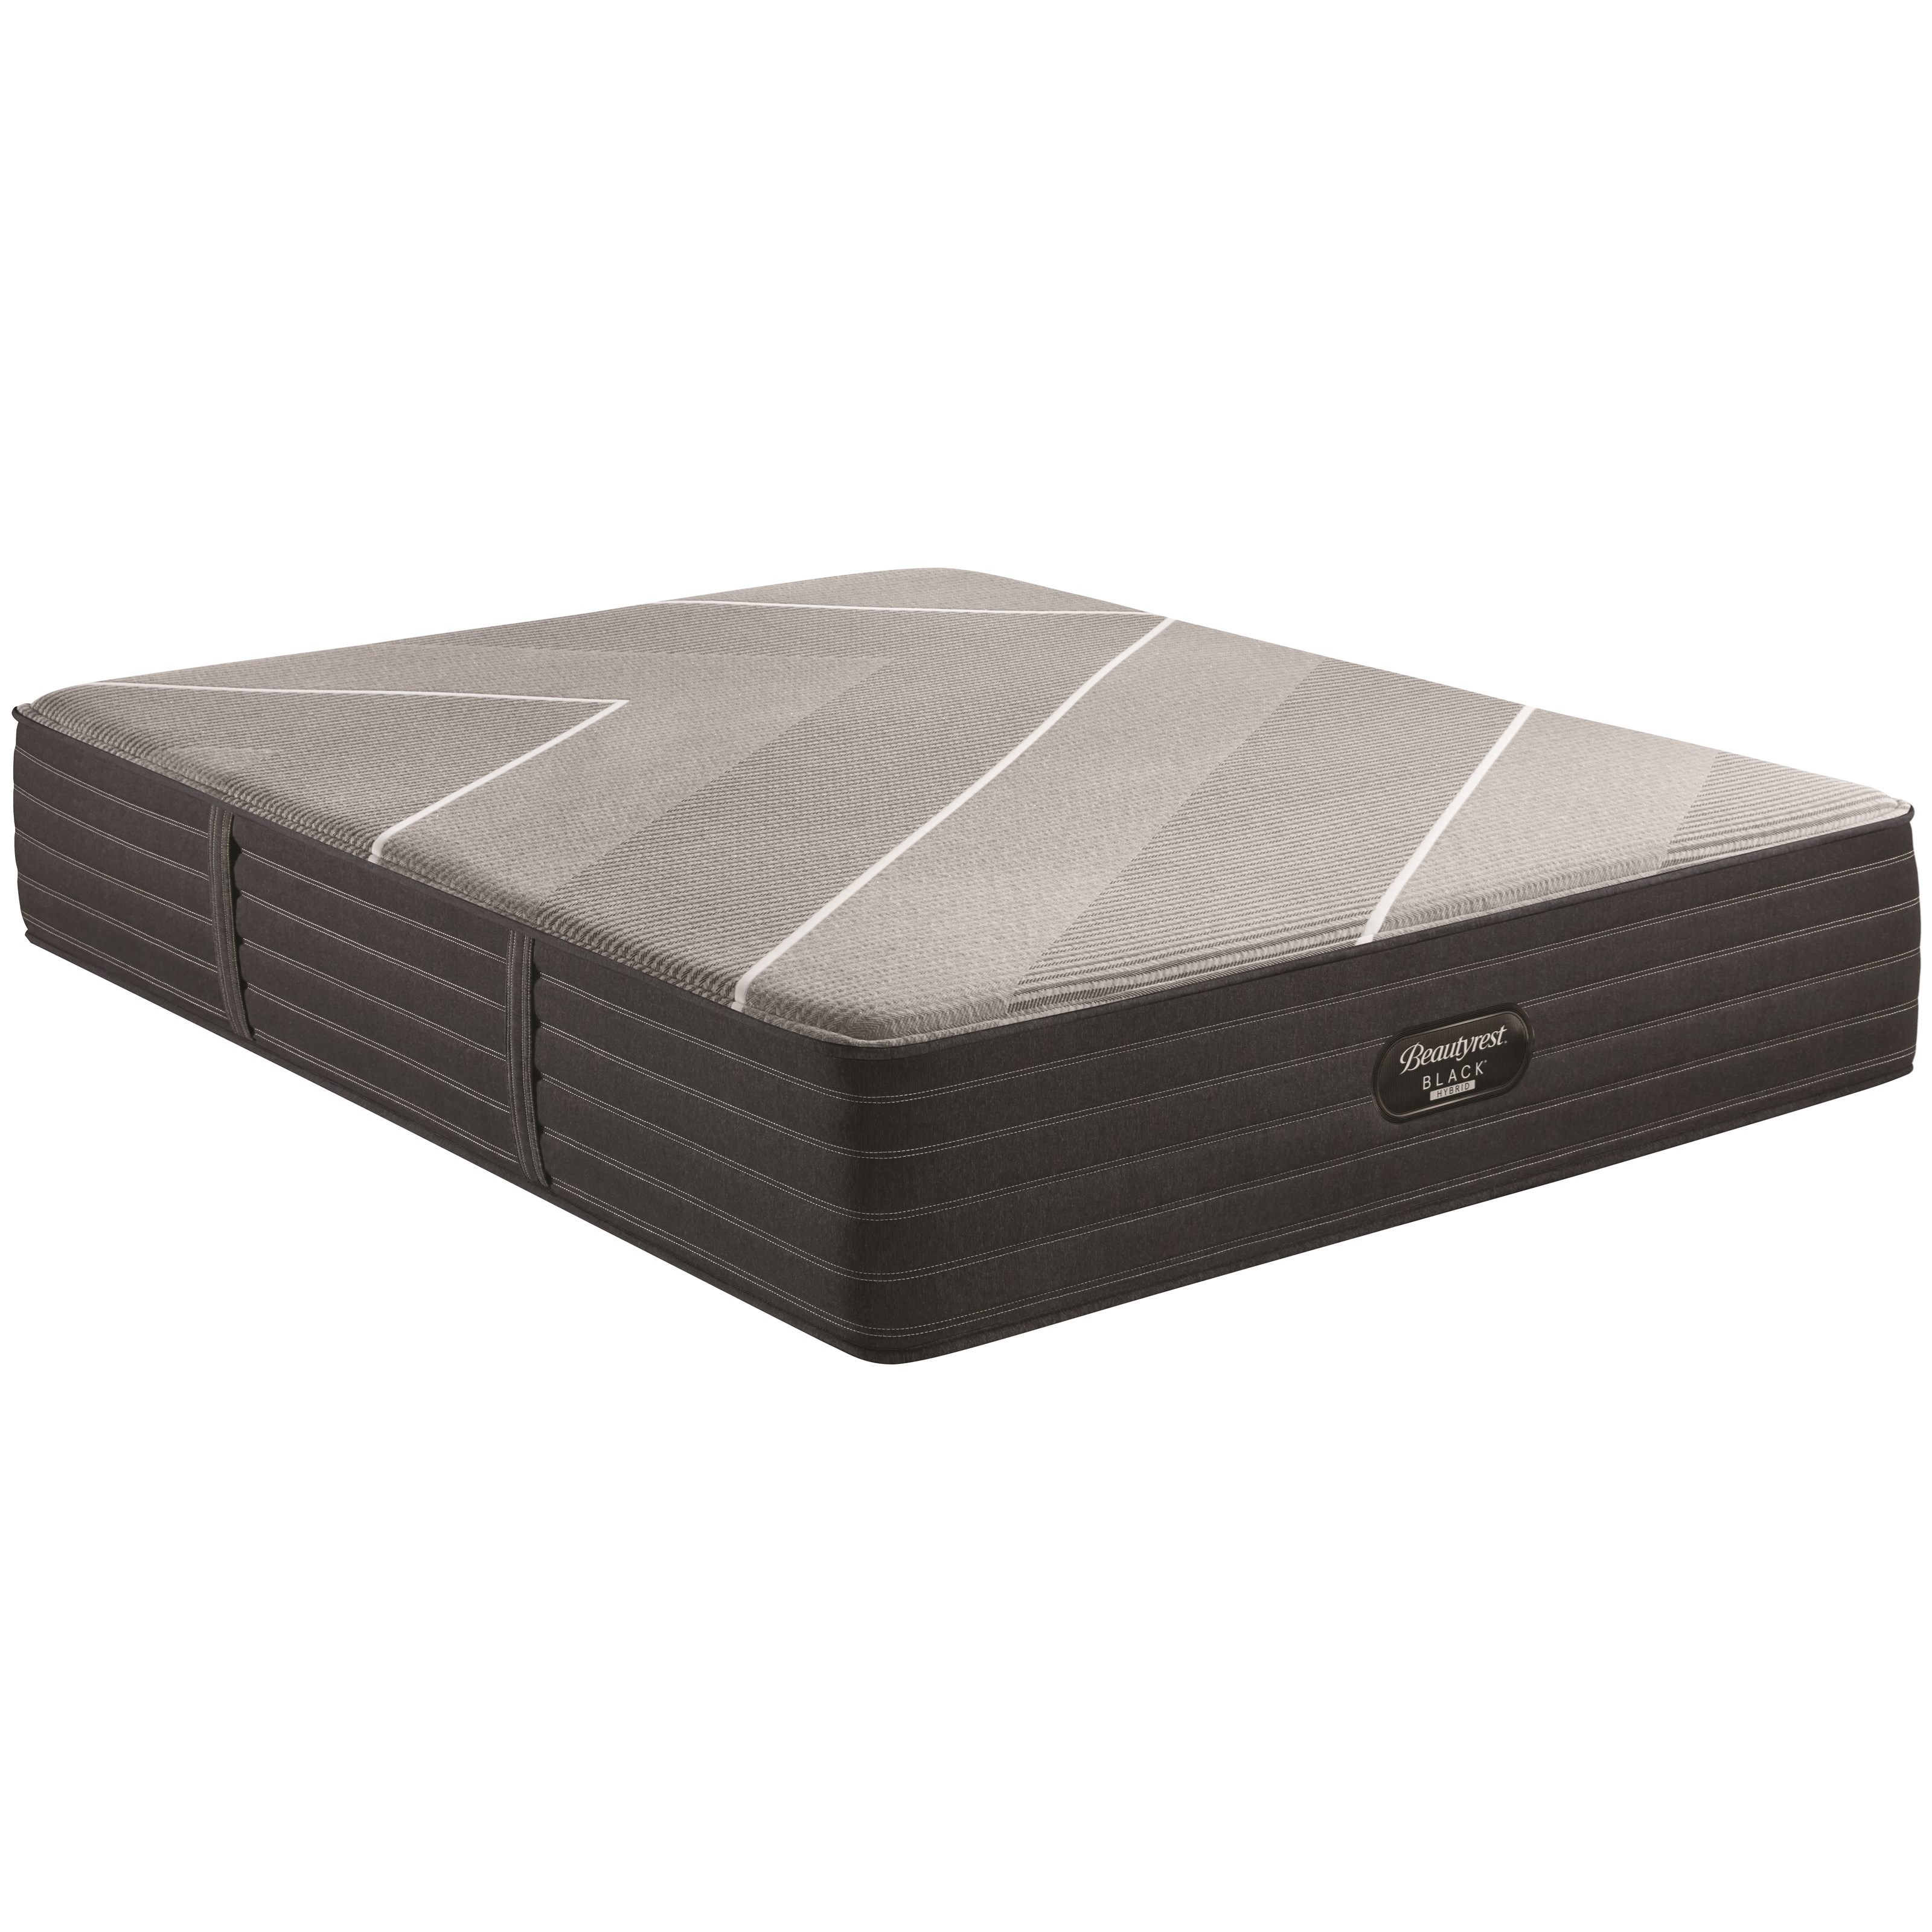 "X-Class Hybrid Firm King 14 1/2"" Firm Hybrid Adj Set by Beautyrest at Walker's Mattress"